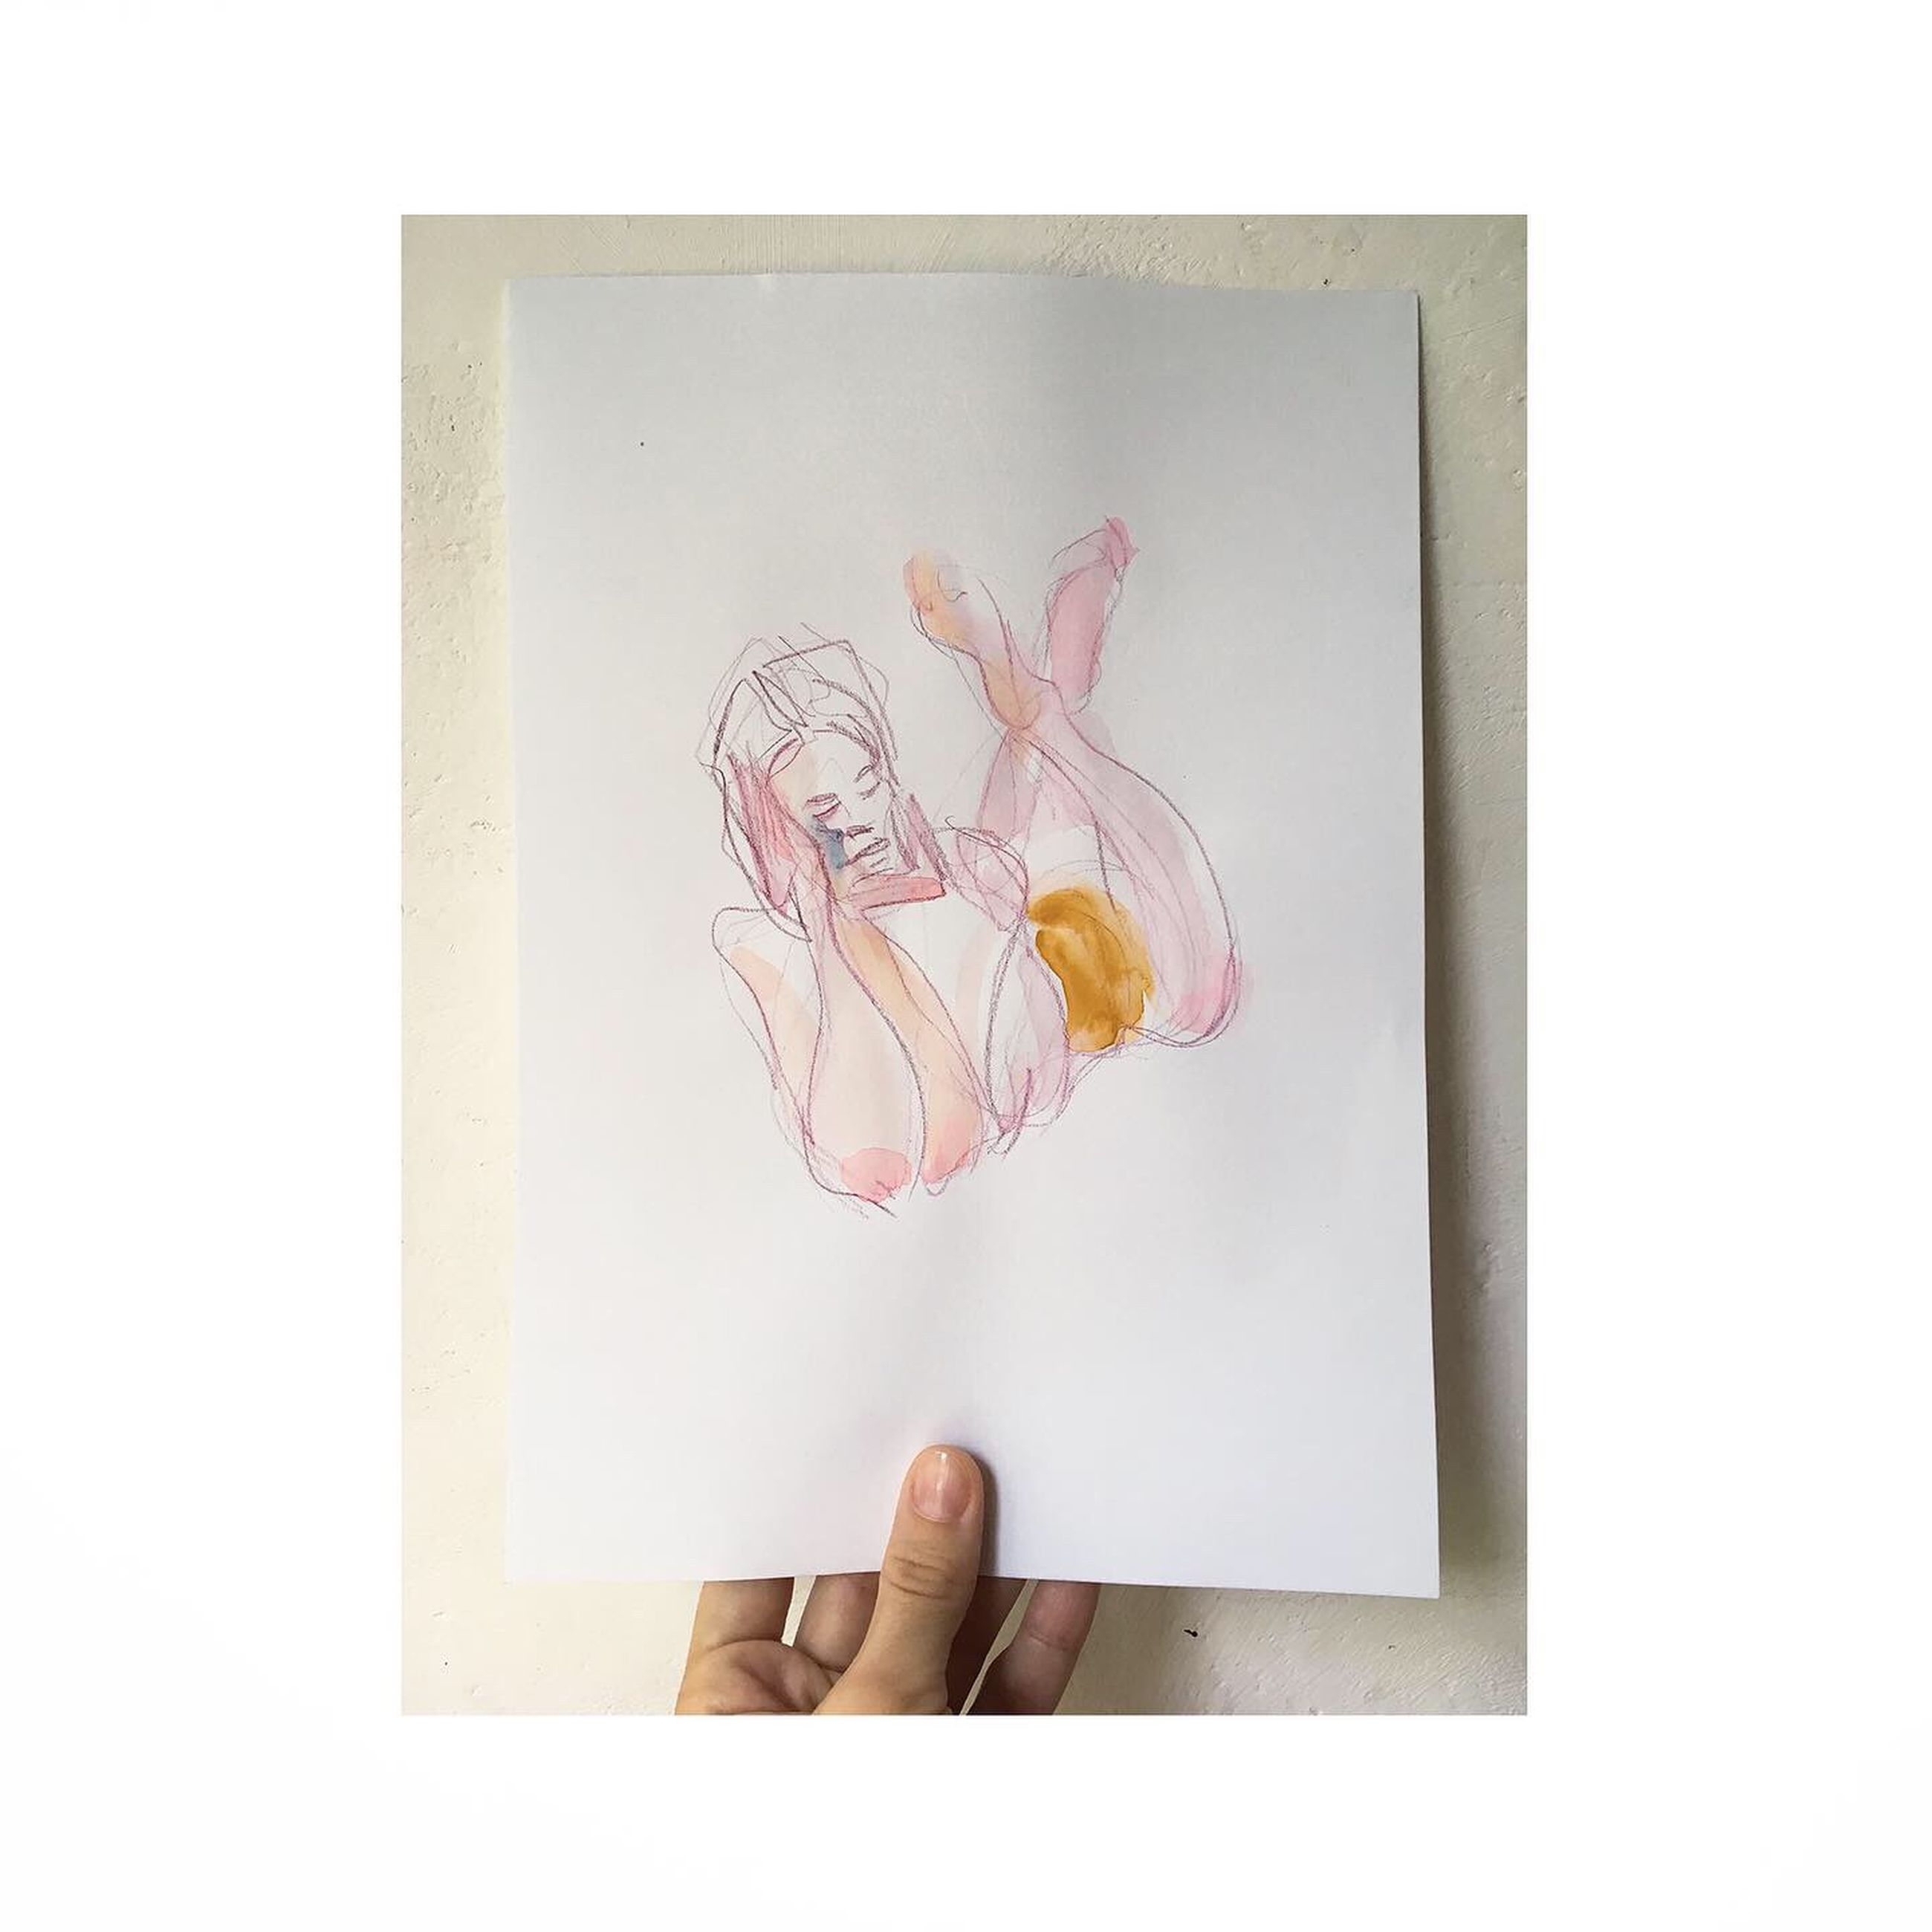 indoors, white background, studio shot, creativity, human body part, one person, directly above, human hand, art and craft, drawing - art product, hand, holding, paper, body part, plant, vulnerability, nature, fragility, frame, finger